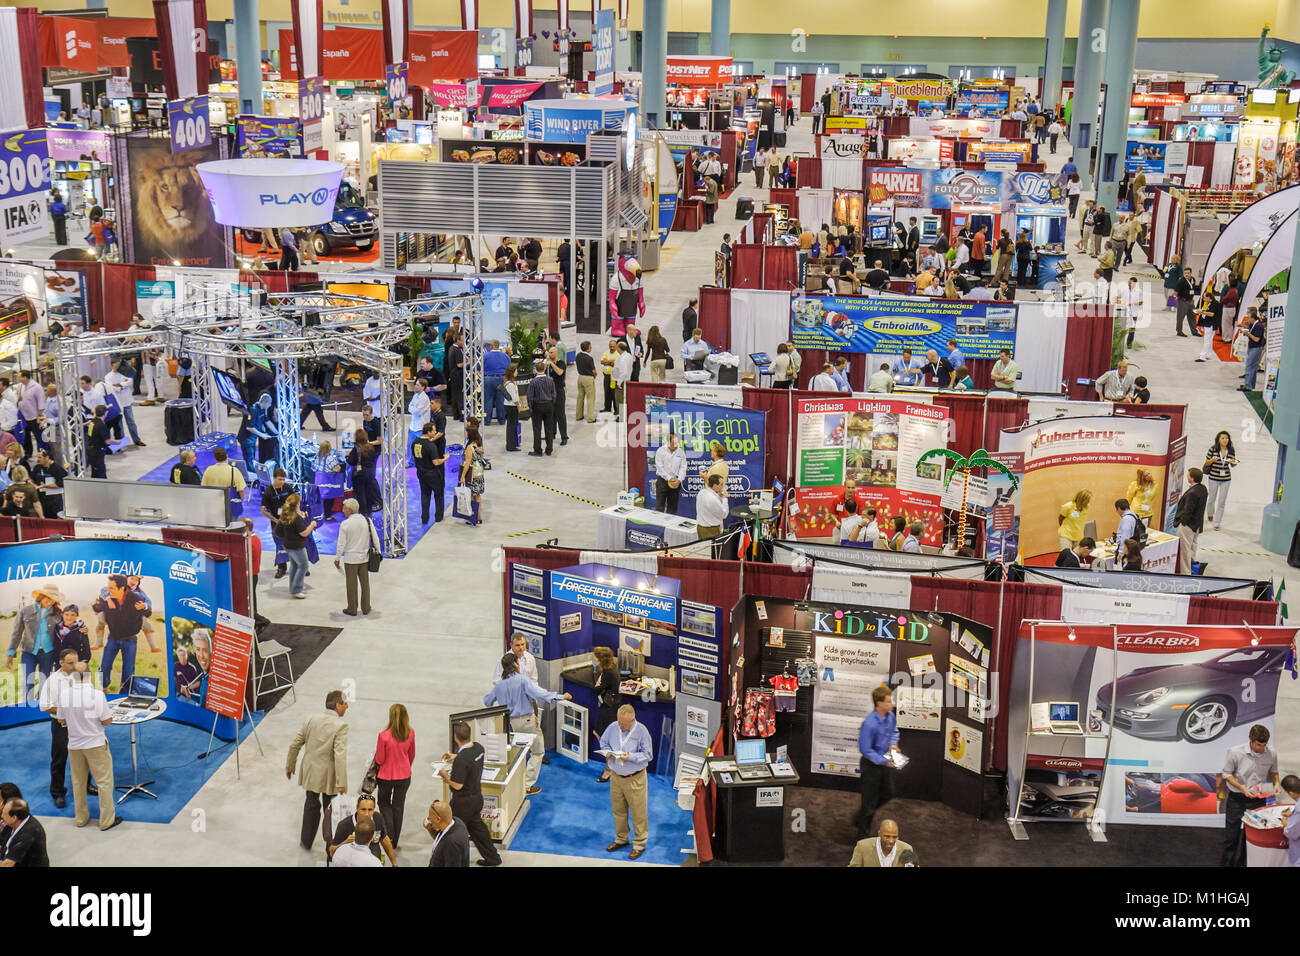 Franchise Expo trade show vendors business booth displays